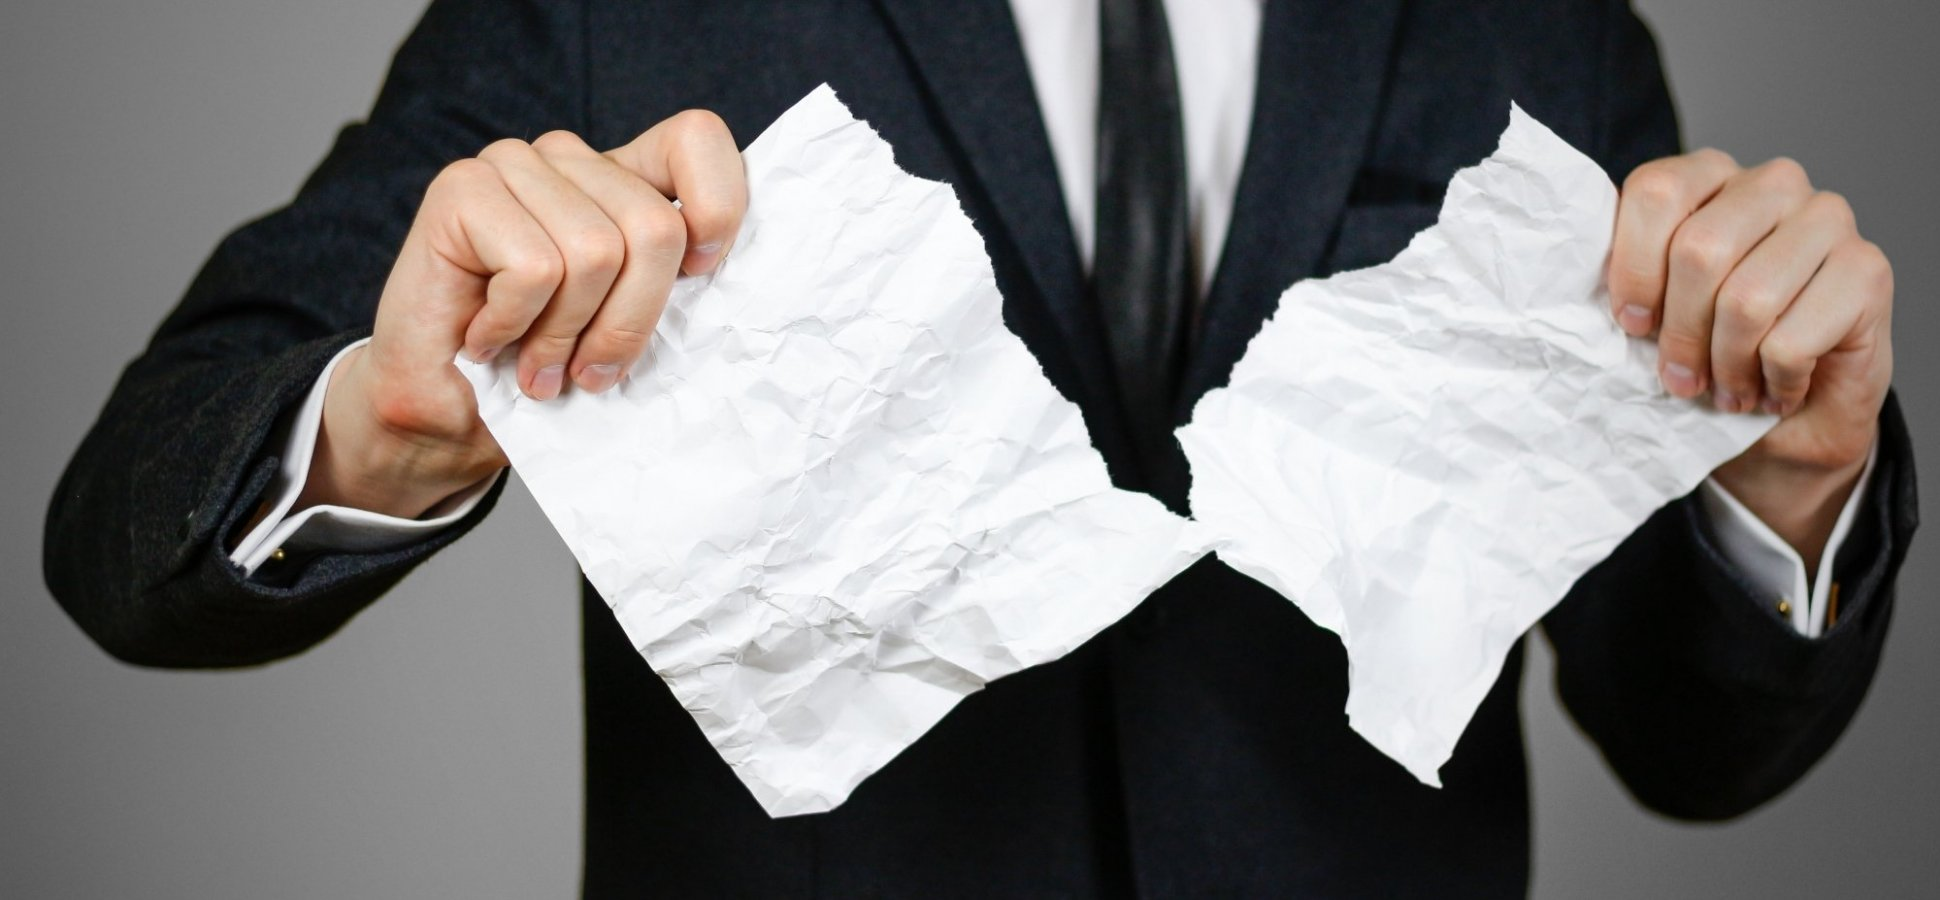 1 small mistake will get your resume rejected immediately according